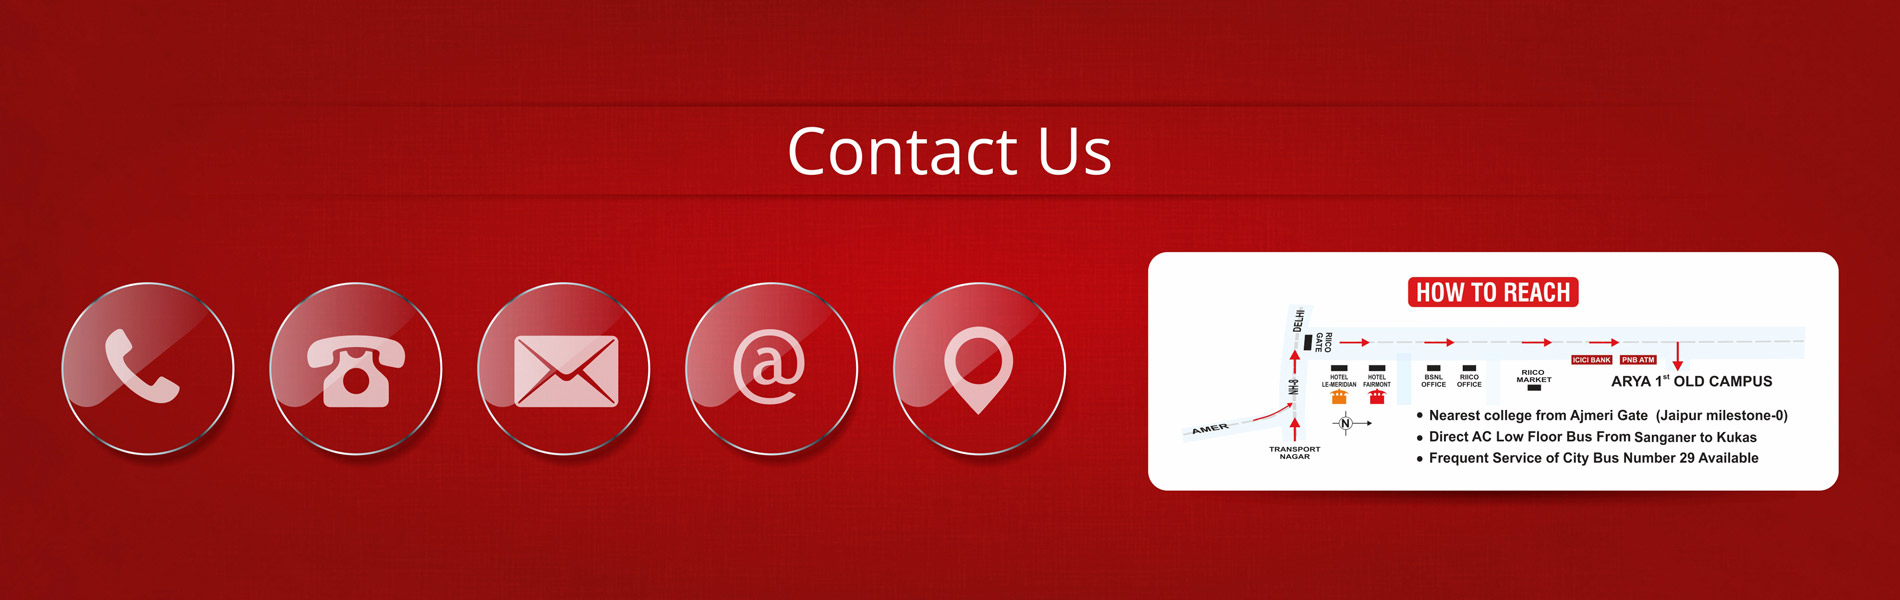 Contact details of Arya College Jaipur